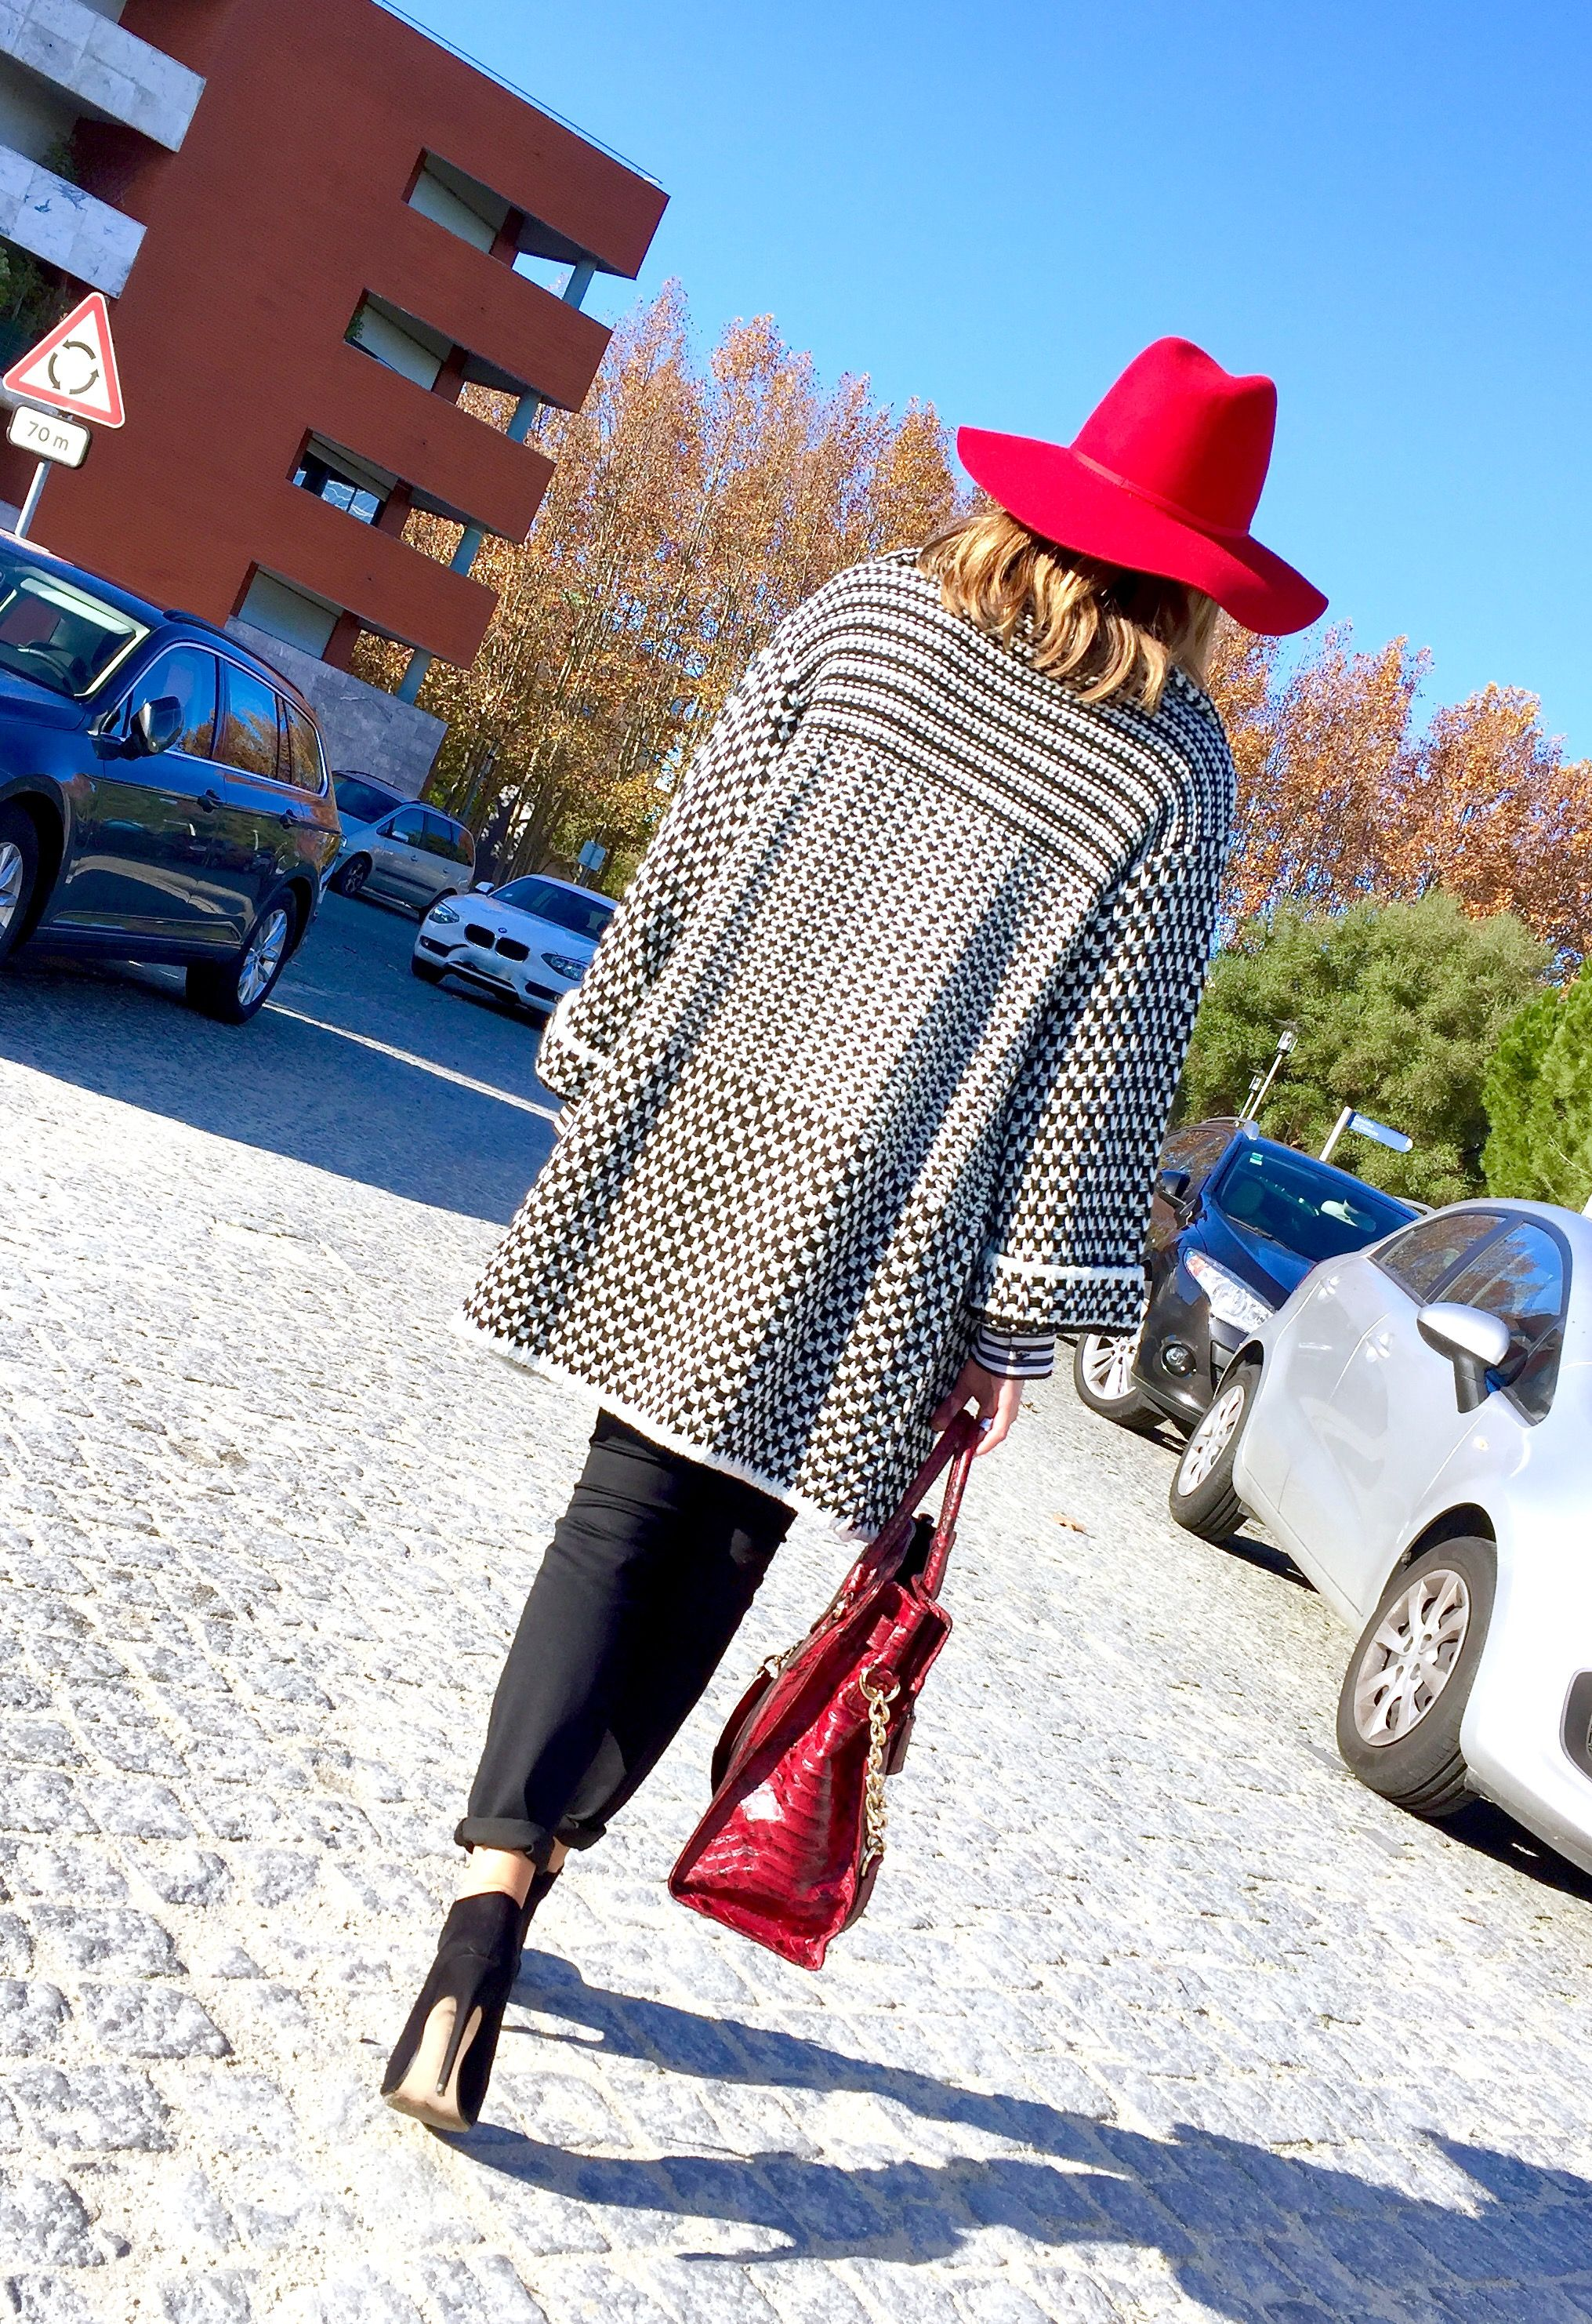 """Who's afraid of the big bad wolf""  ?! ;)   #StylistTips #FREEtips #NewPost #BlogPost #East69thand1Style #RedRidingHood"